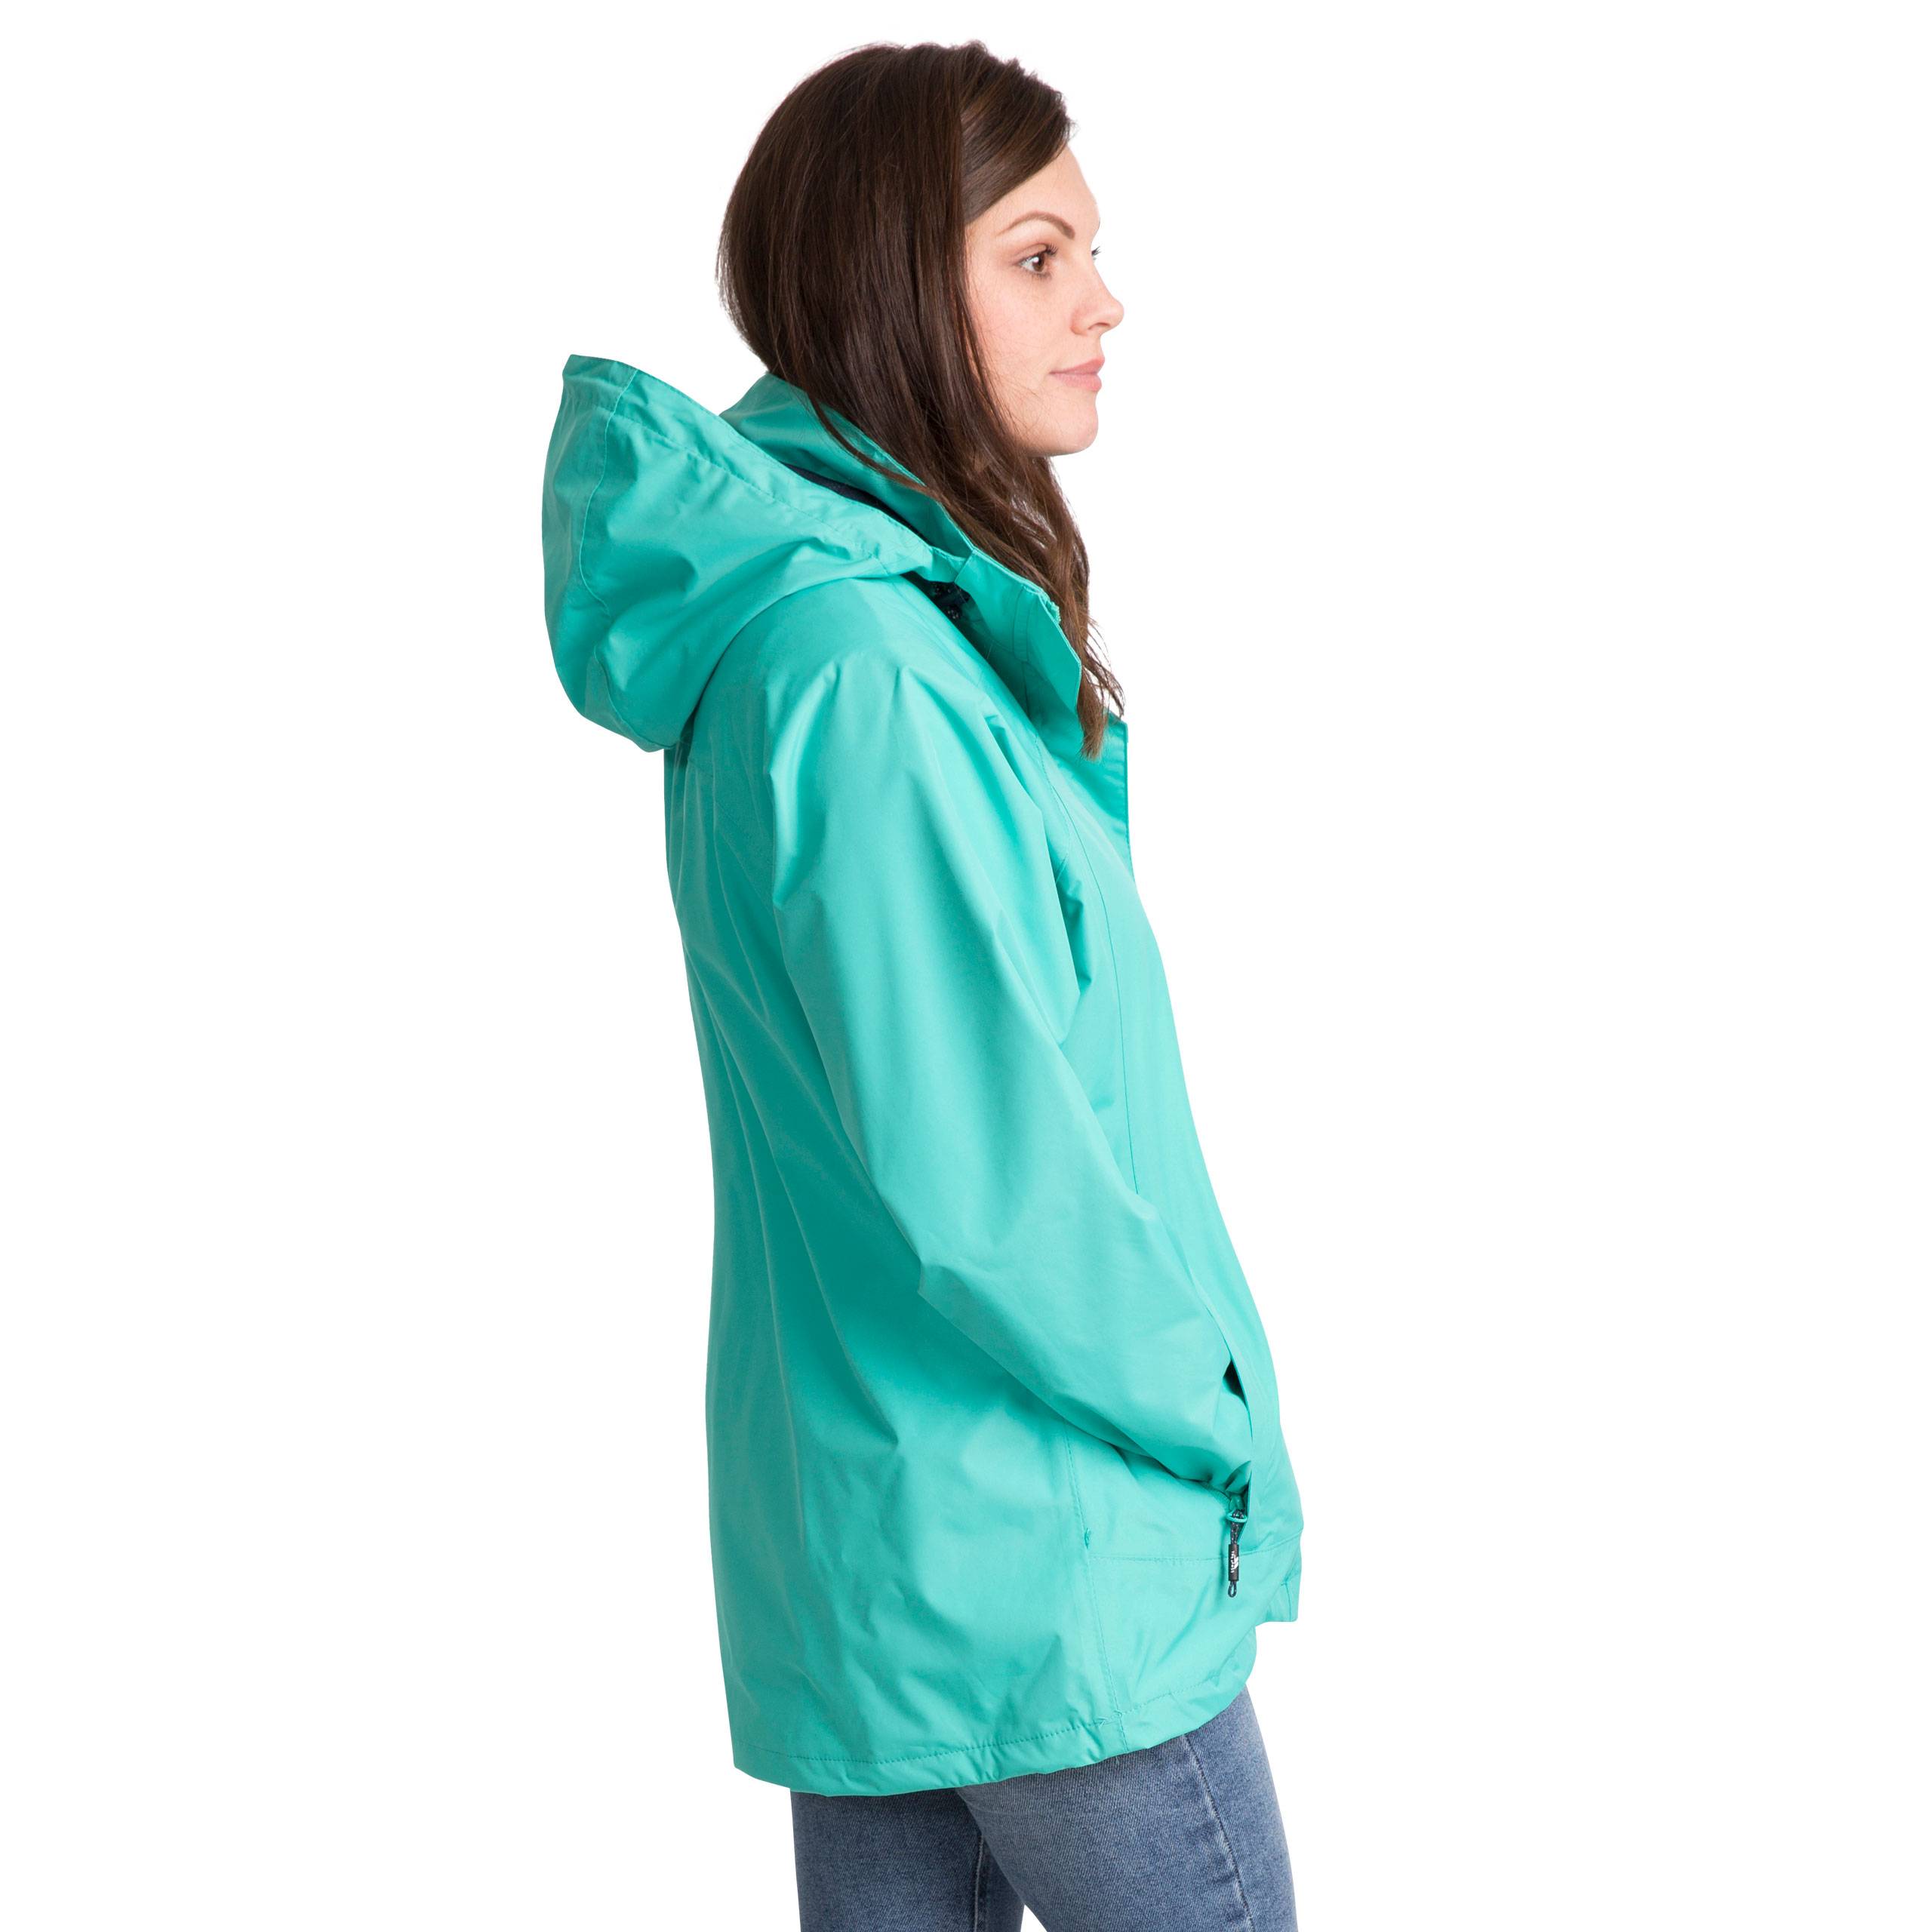 Trespass-Womens-Waterproof-Hooded-Jacket-Outdoor-Cycling-Raincoat thumbnail 21